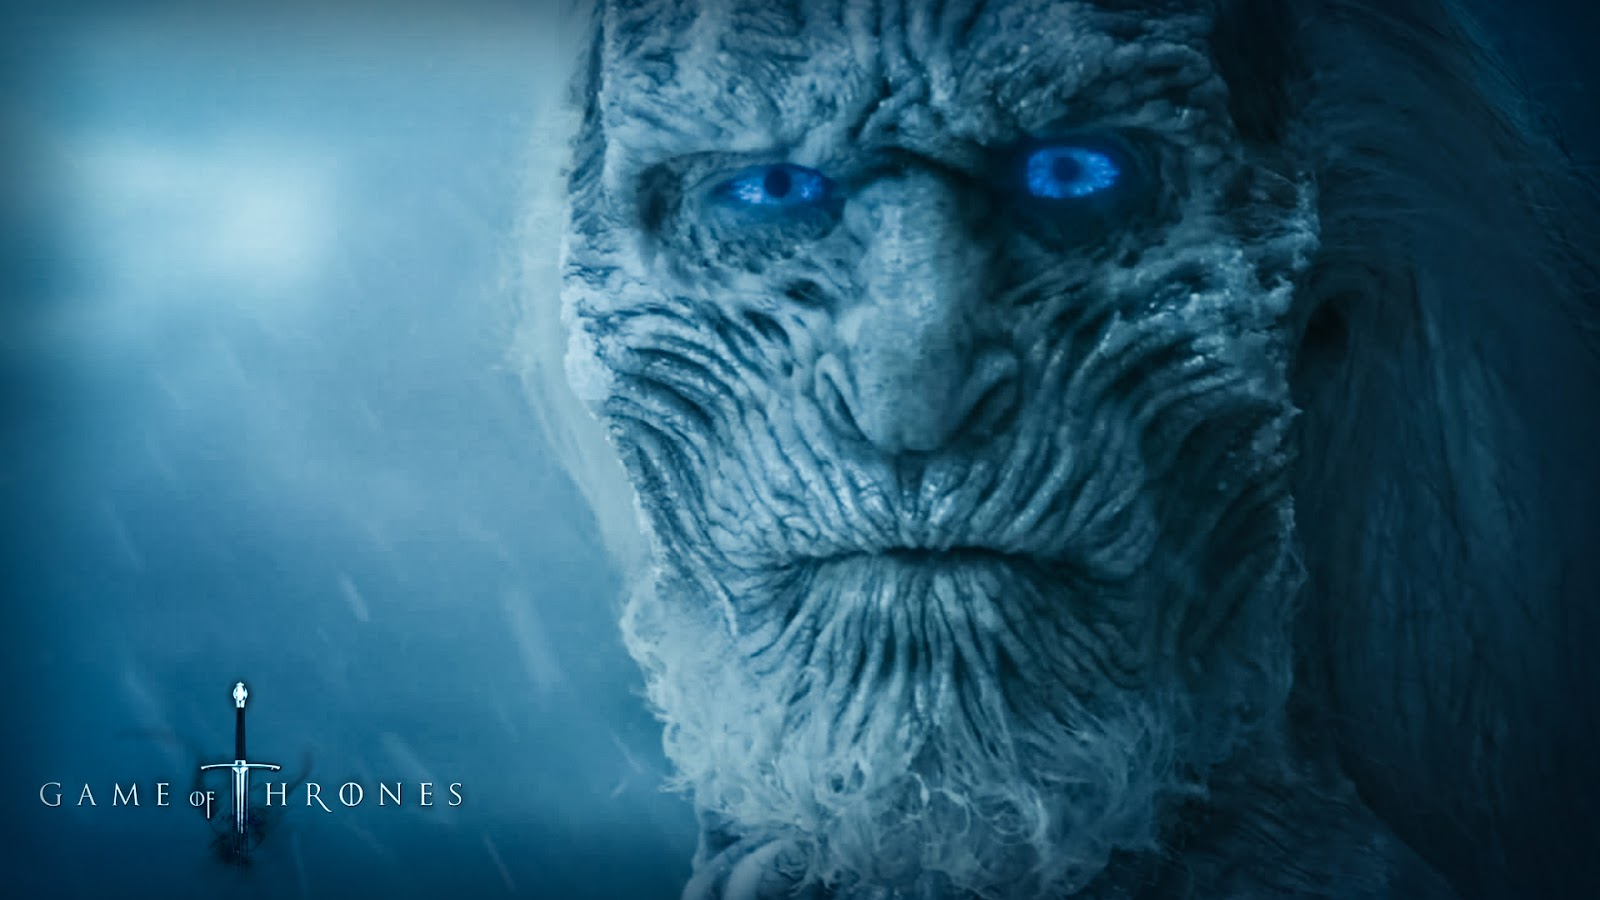 70 Hd Game Of Thrones Wallpapers Season 1 To 8 2019 Topibestlist